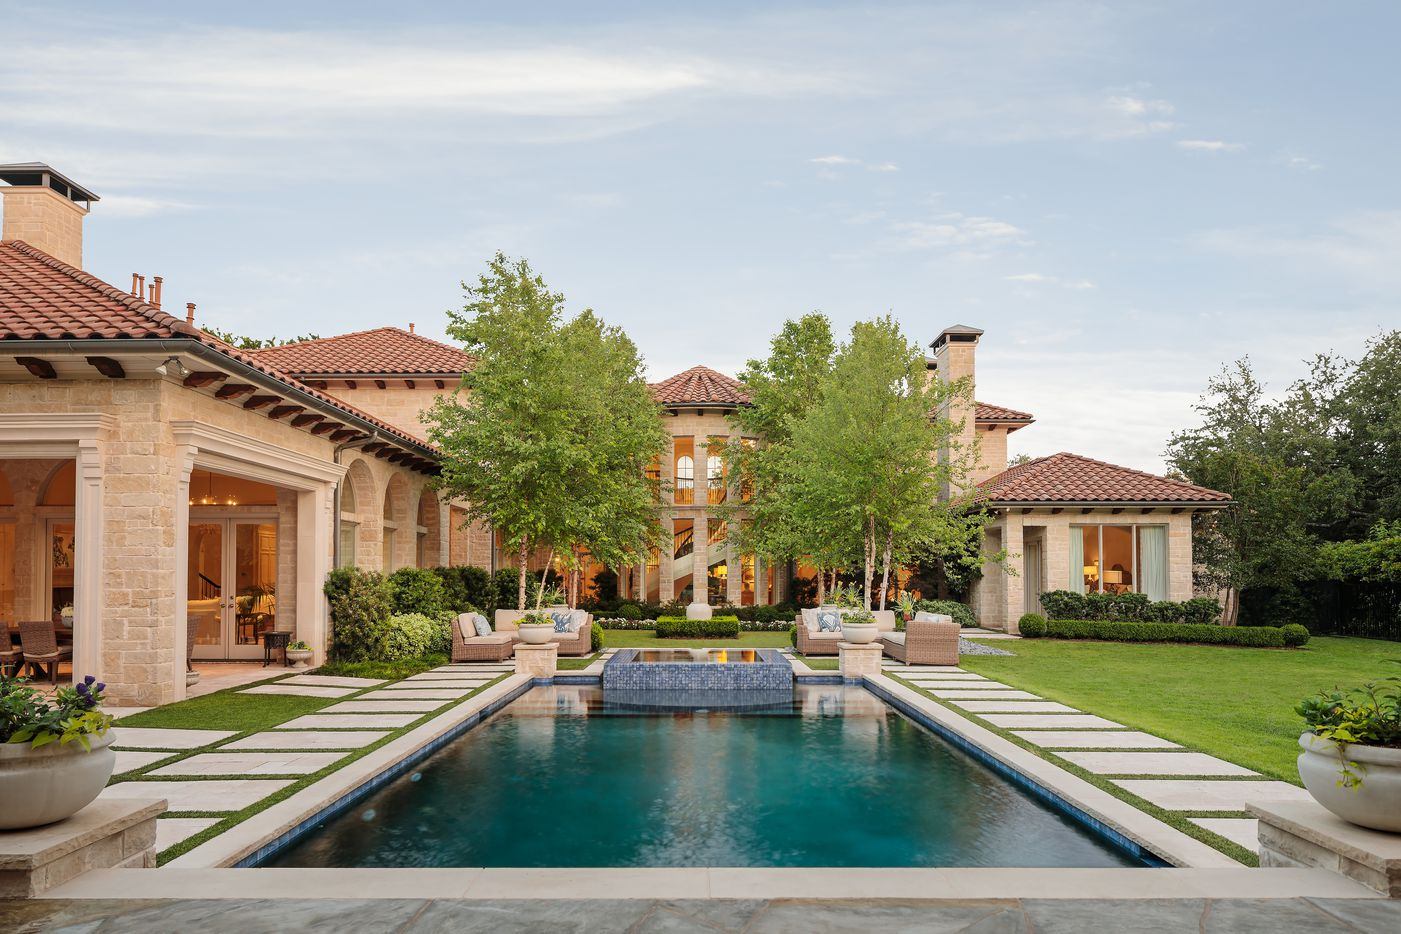 This 8,700-square-foot home at 5027 Radbrook Place in Dallas' Preston Hollow neighborhood is listed for $4,795,000.